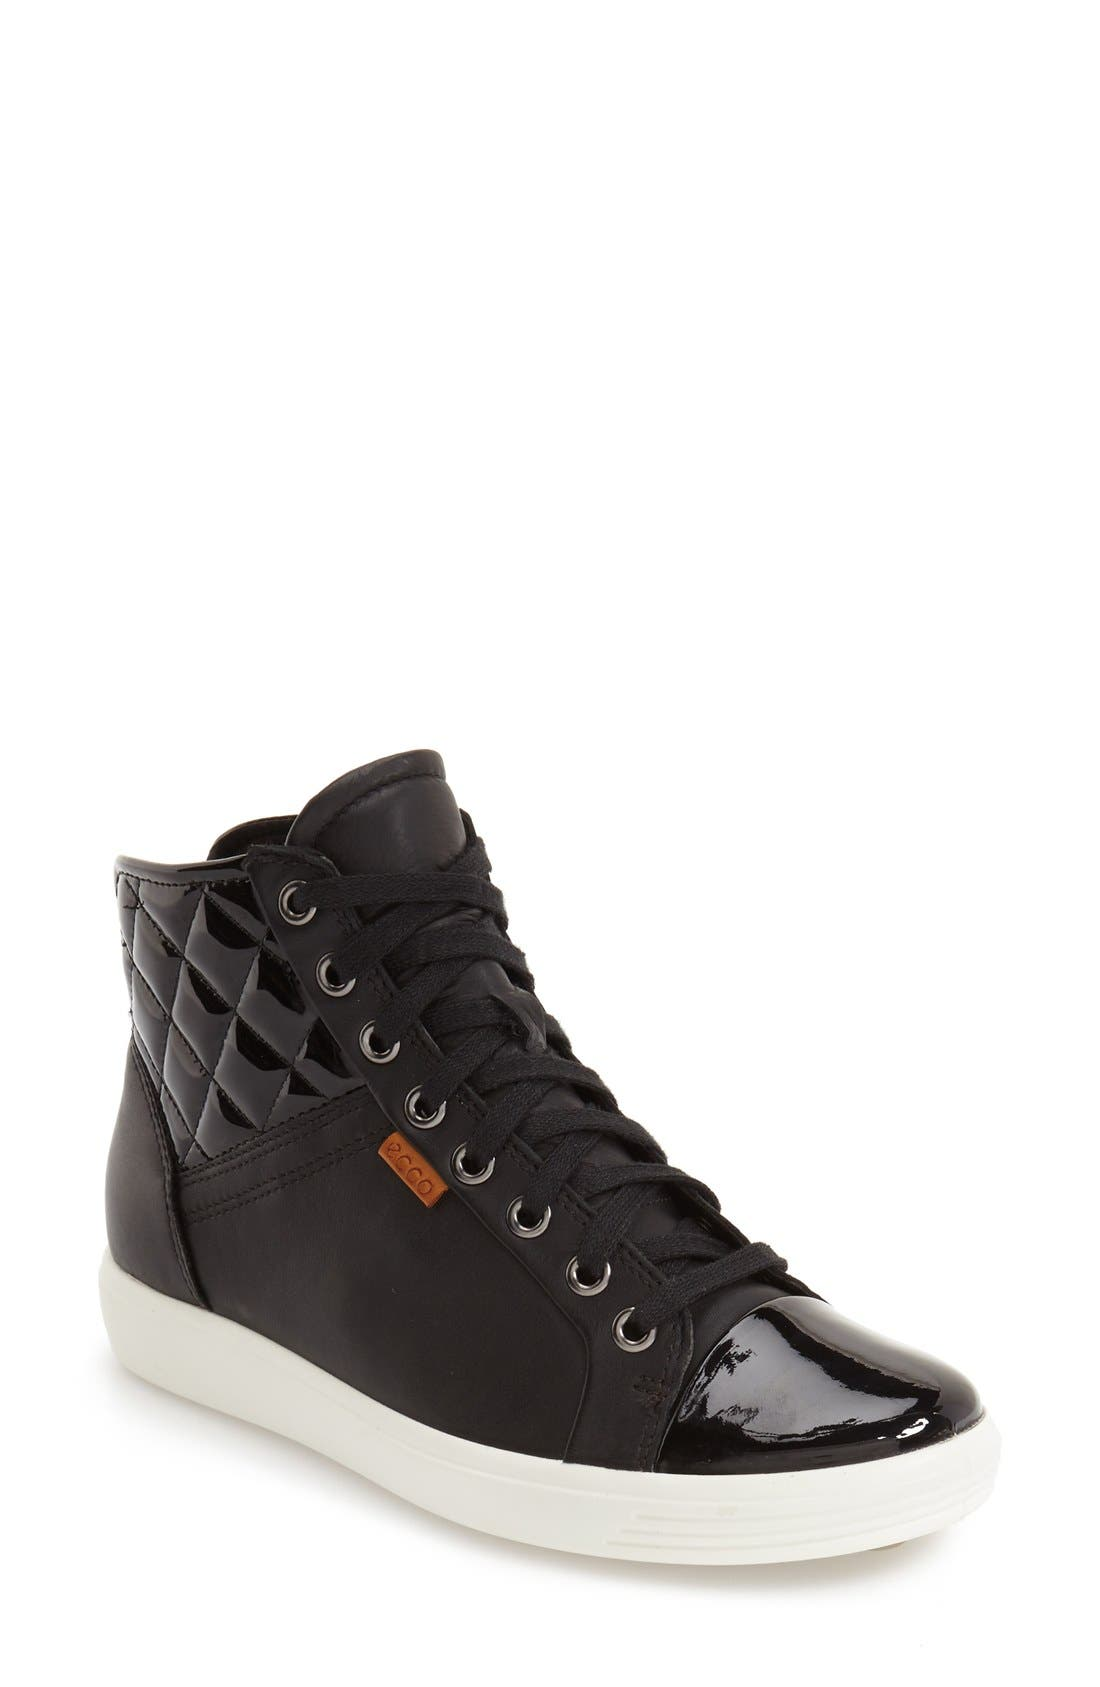 'Soft 7' Quilted High Top Sneaker,                         Main,                         color, 009